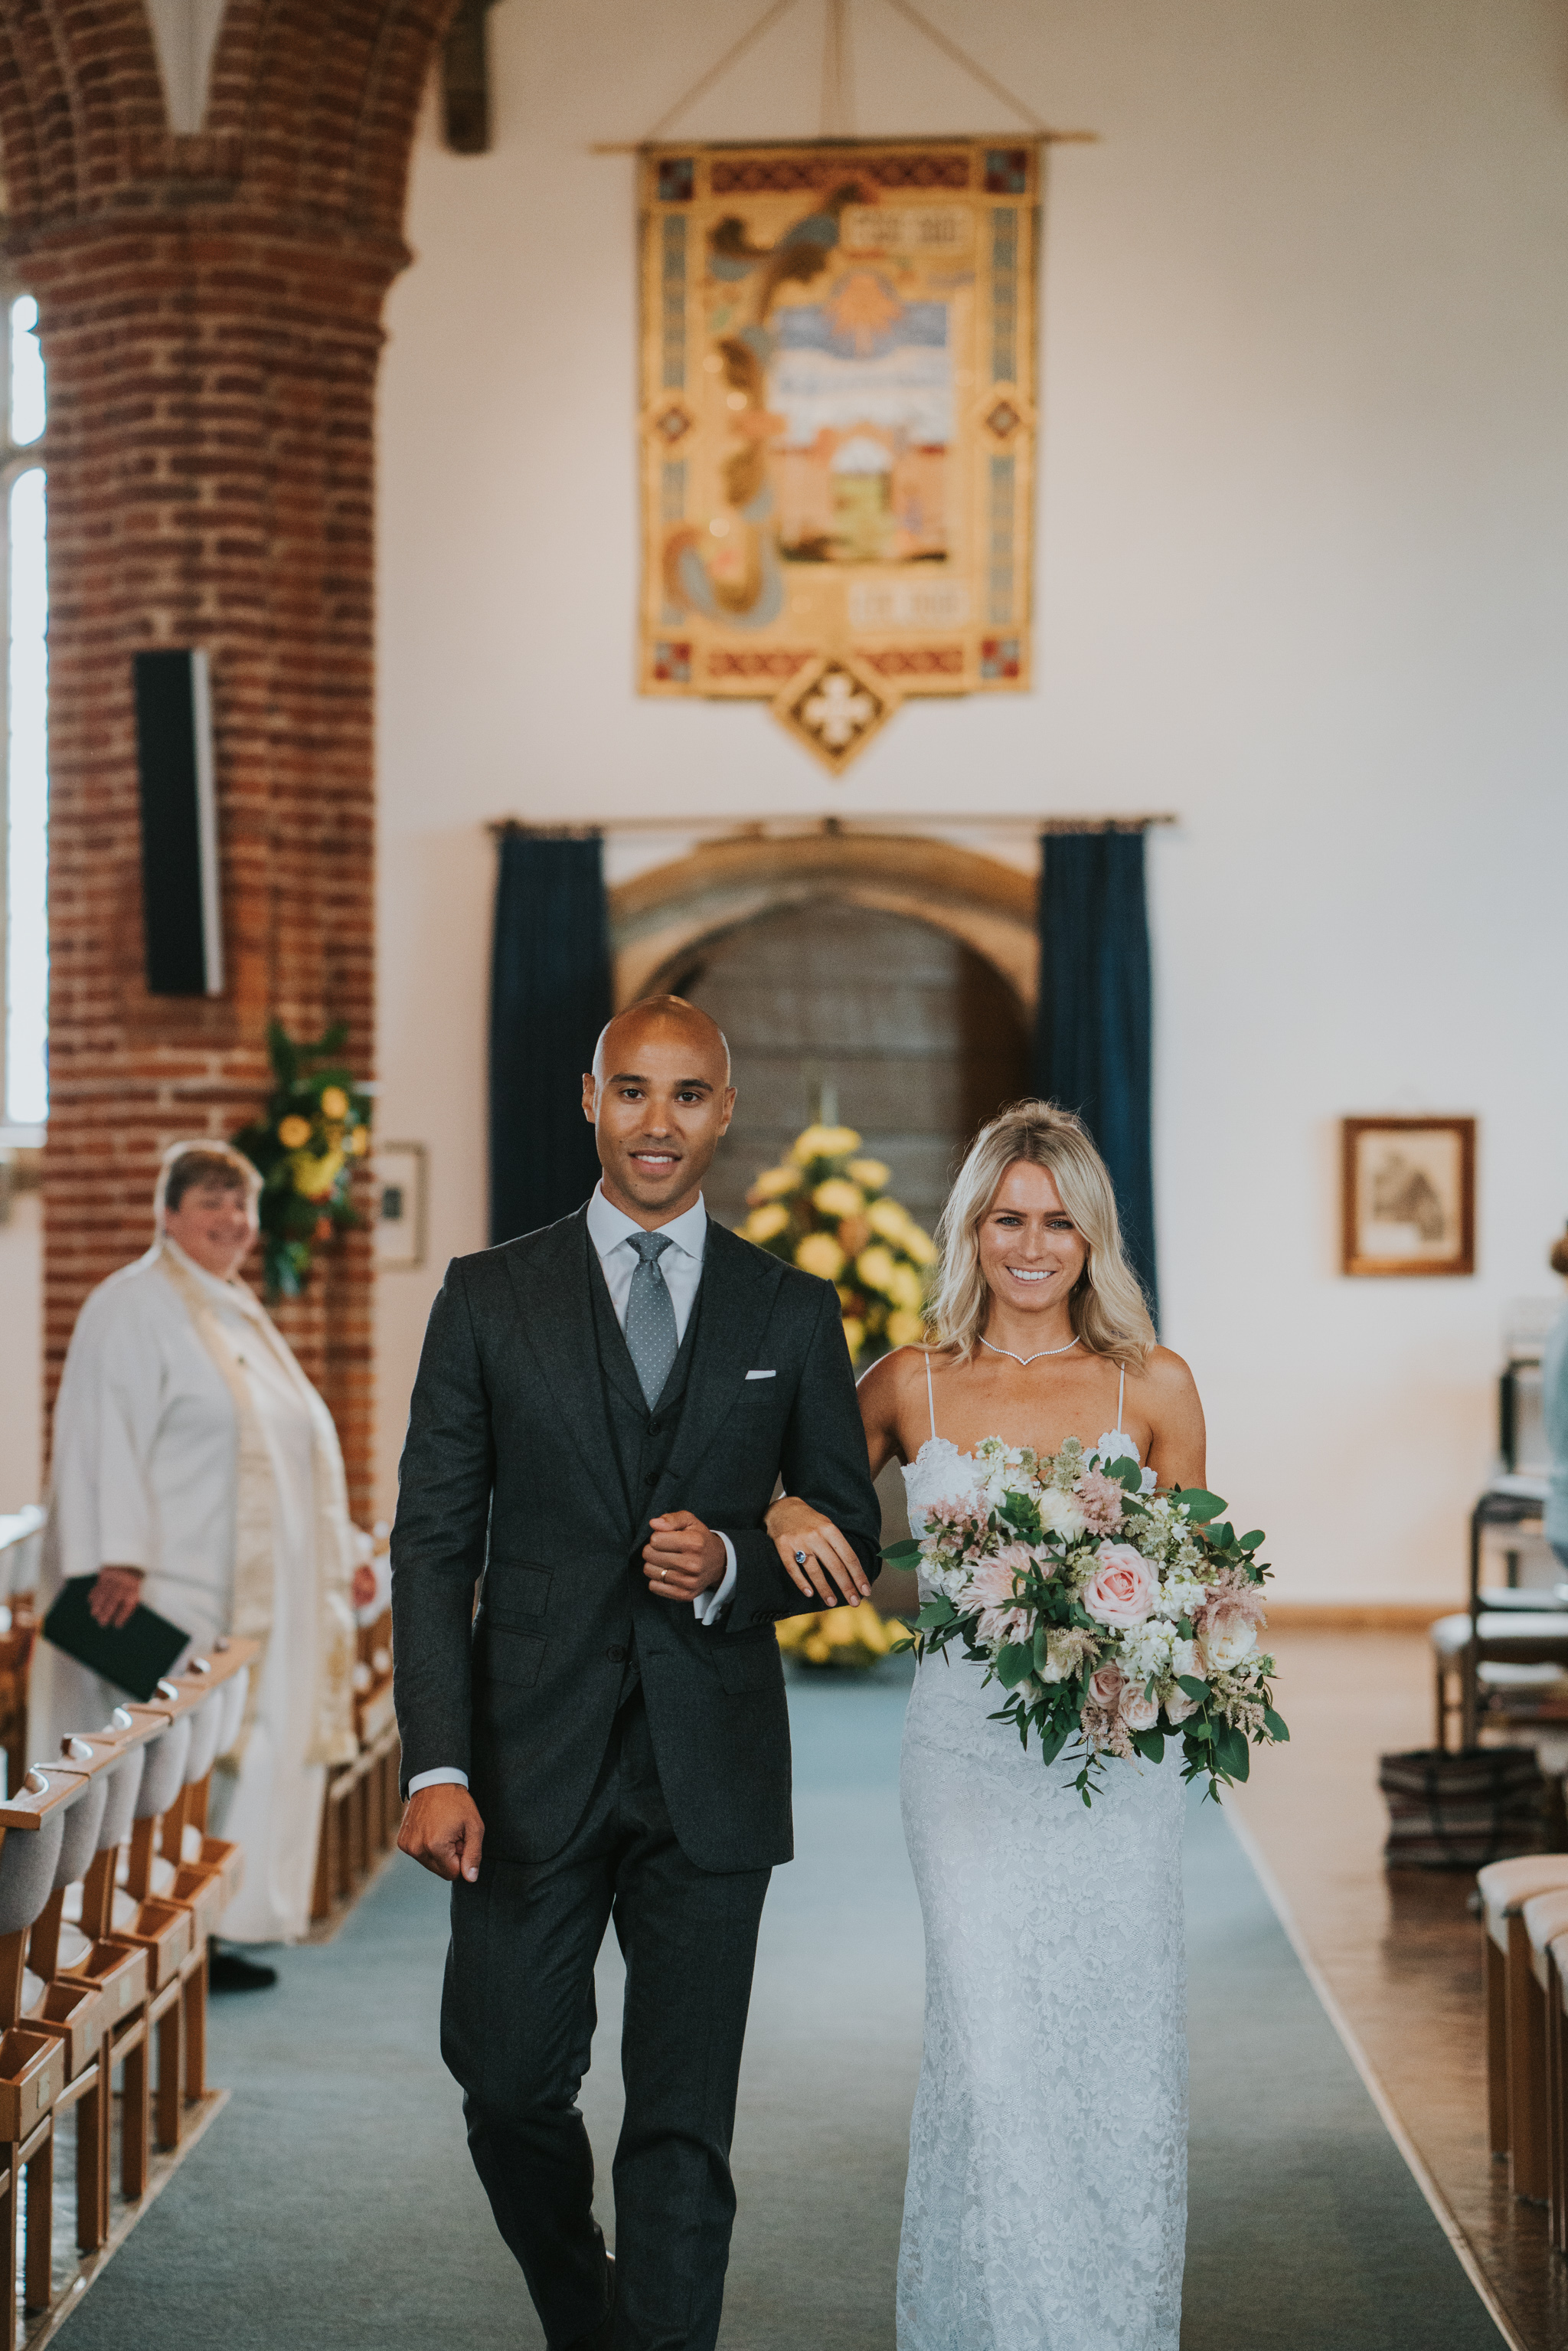 intimate-english-church-wedding-sarah-alex-colchester-essex-grace-elizabeth-colchester-essex-alternative-wedding-lifestyle-photographer-essex-suffolk-norfolk-devon (61 of 92).jpg